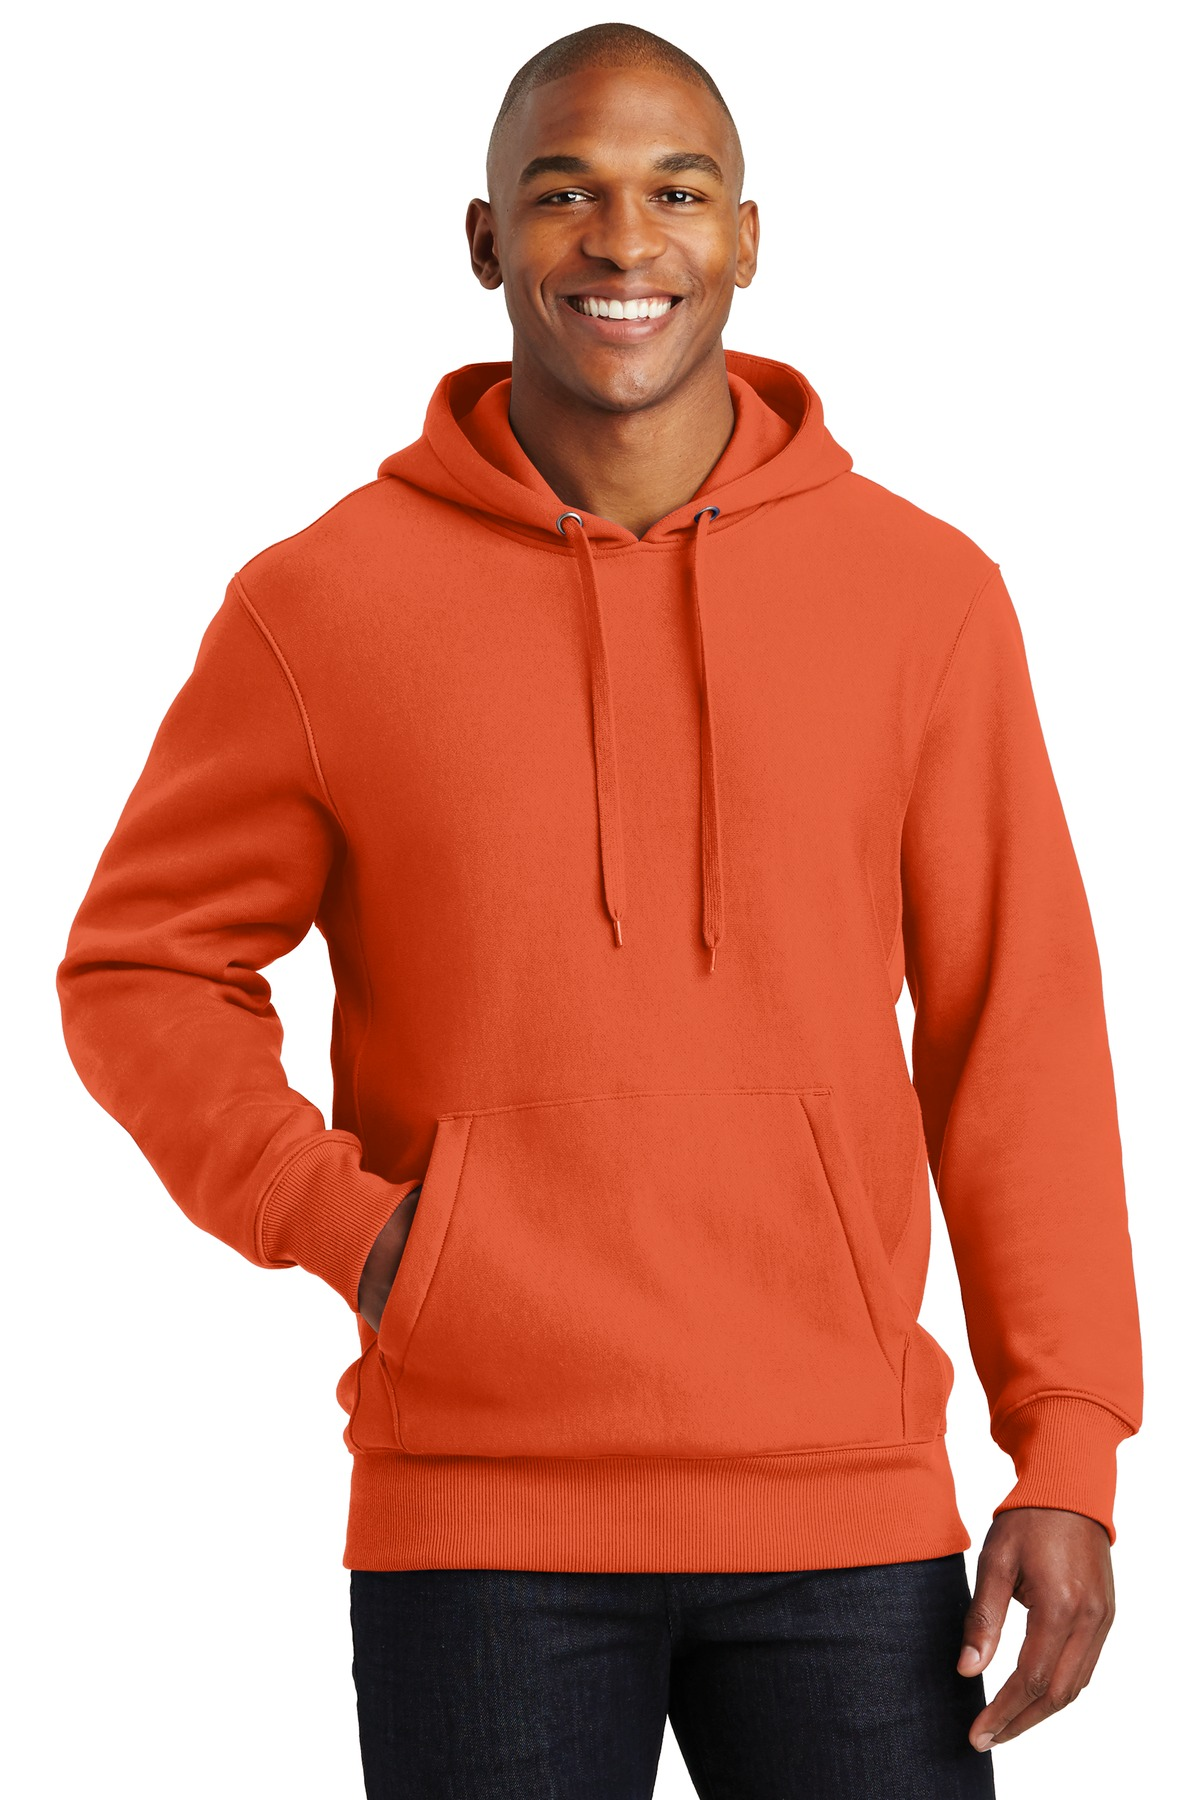 Sport-Tek ®  Super Heavyweight Pullover Hooded Sweatshirt.  F281 - Orange